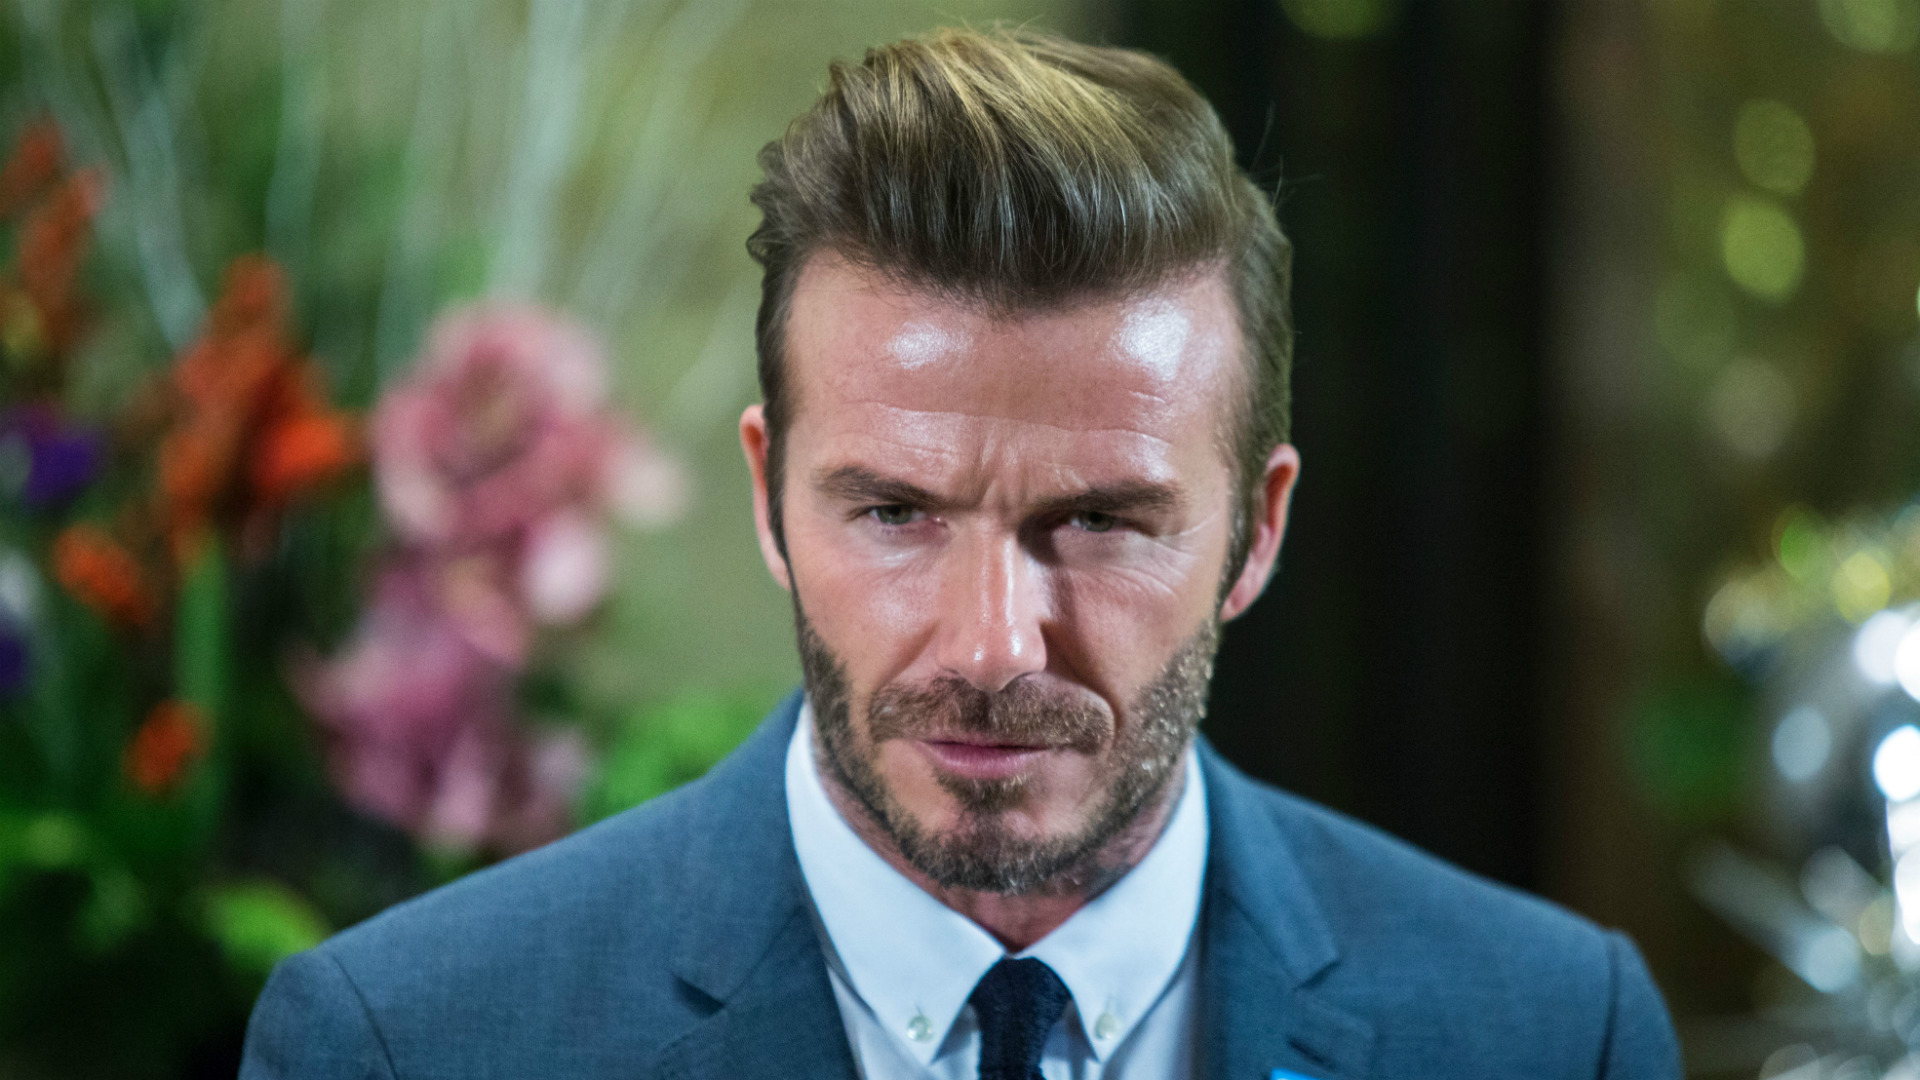 David-beckham-2016_1re1djqccfl7r1x5tgc748hav6